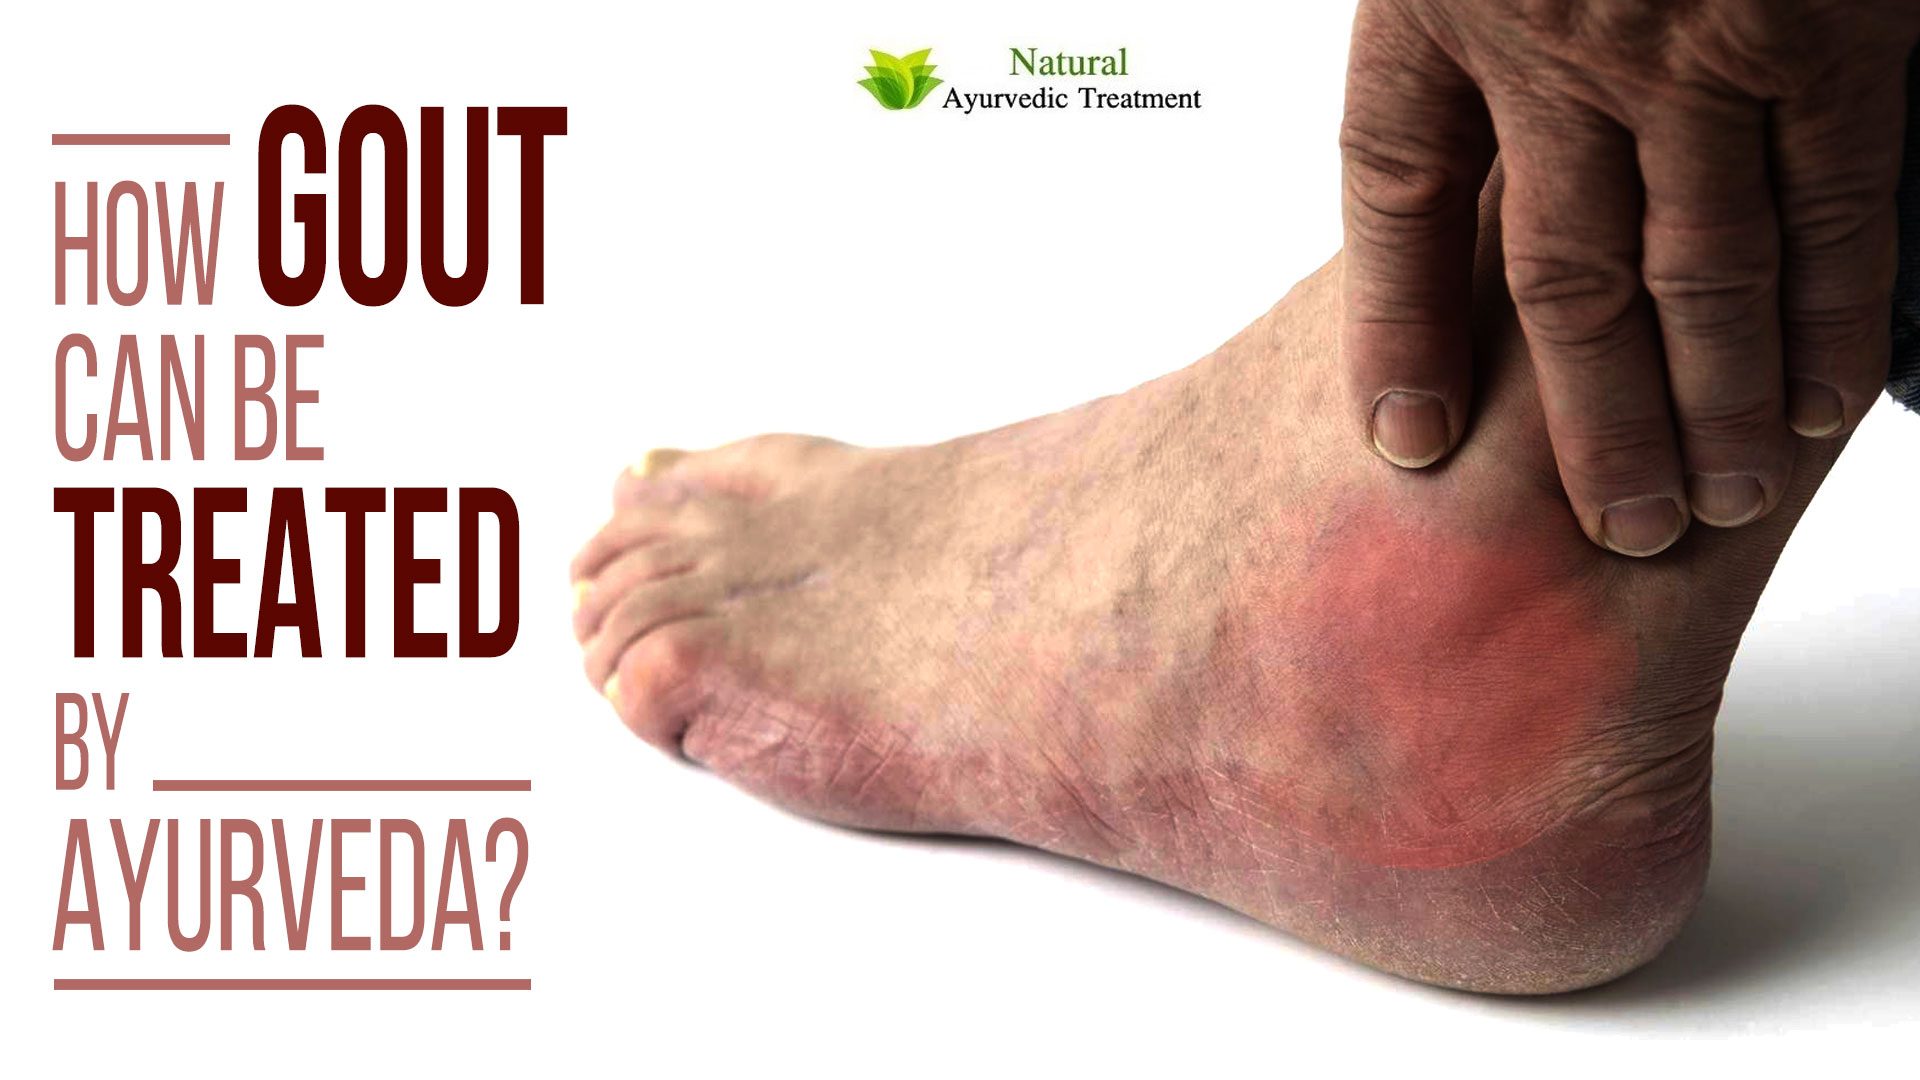 How Gout can be Treated by Ayurveda?